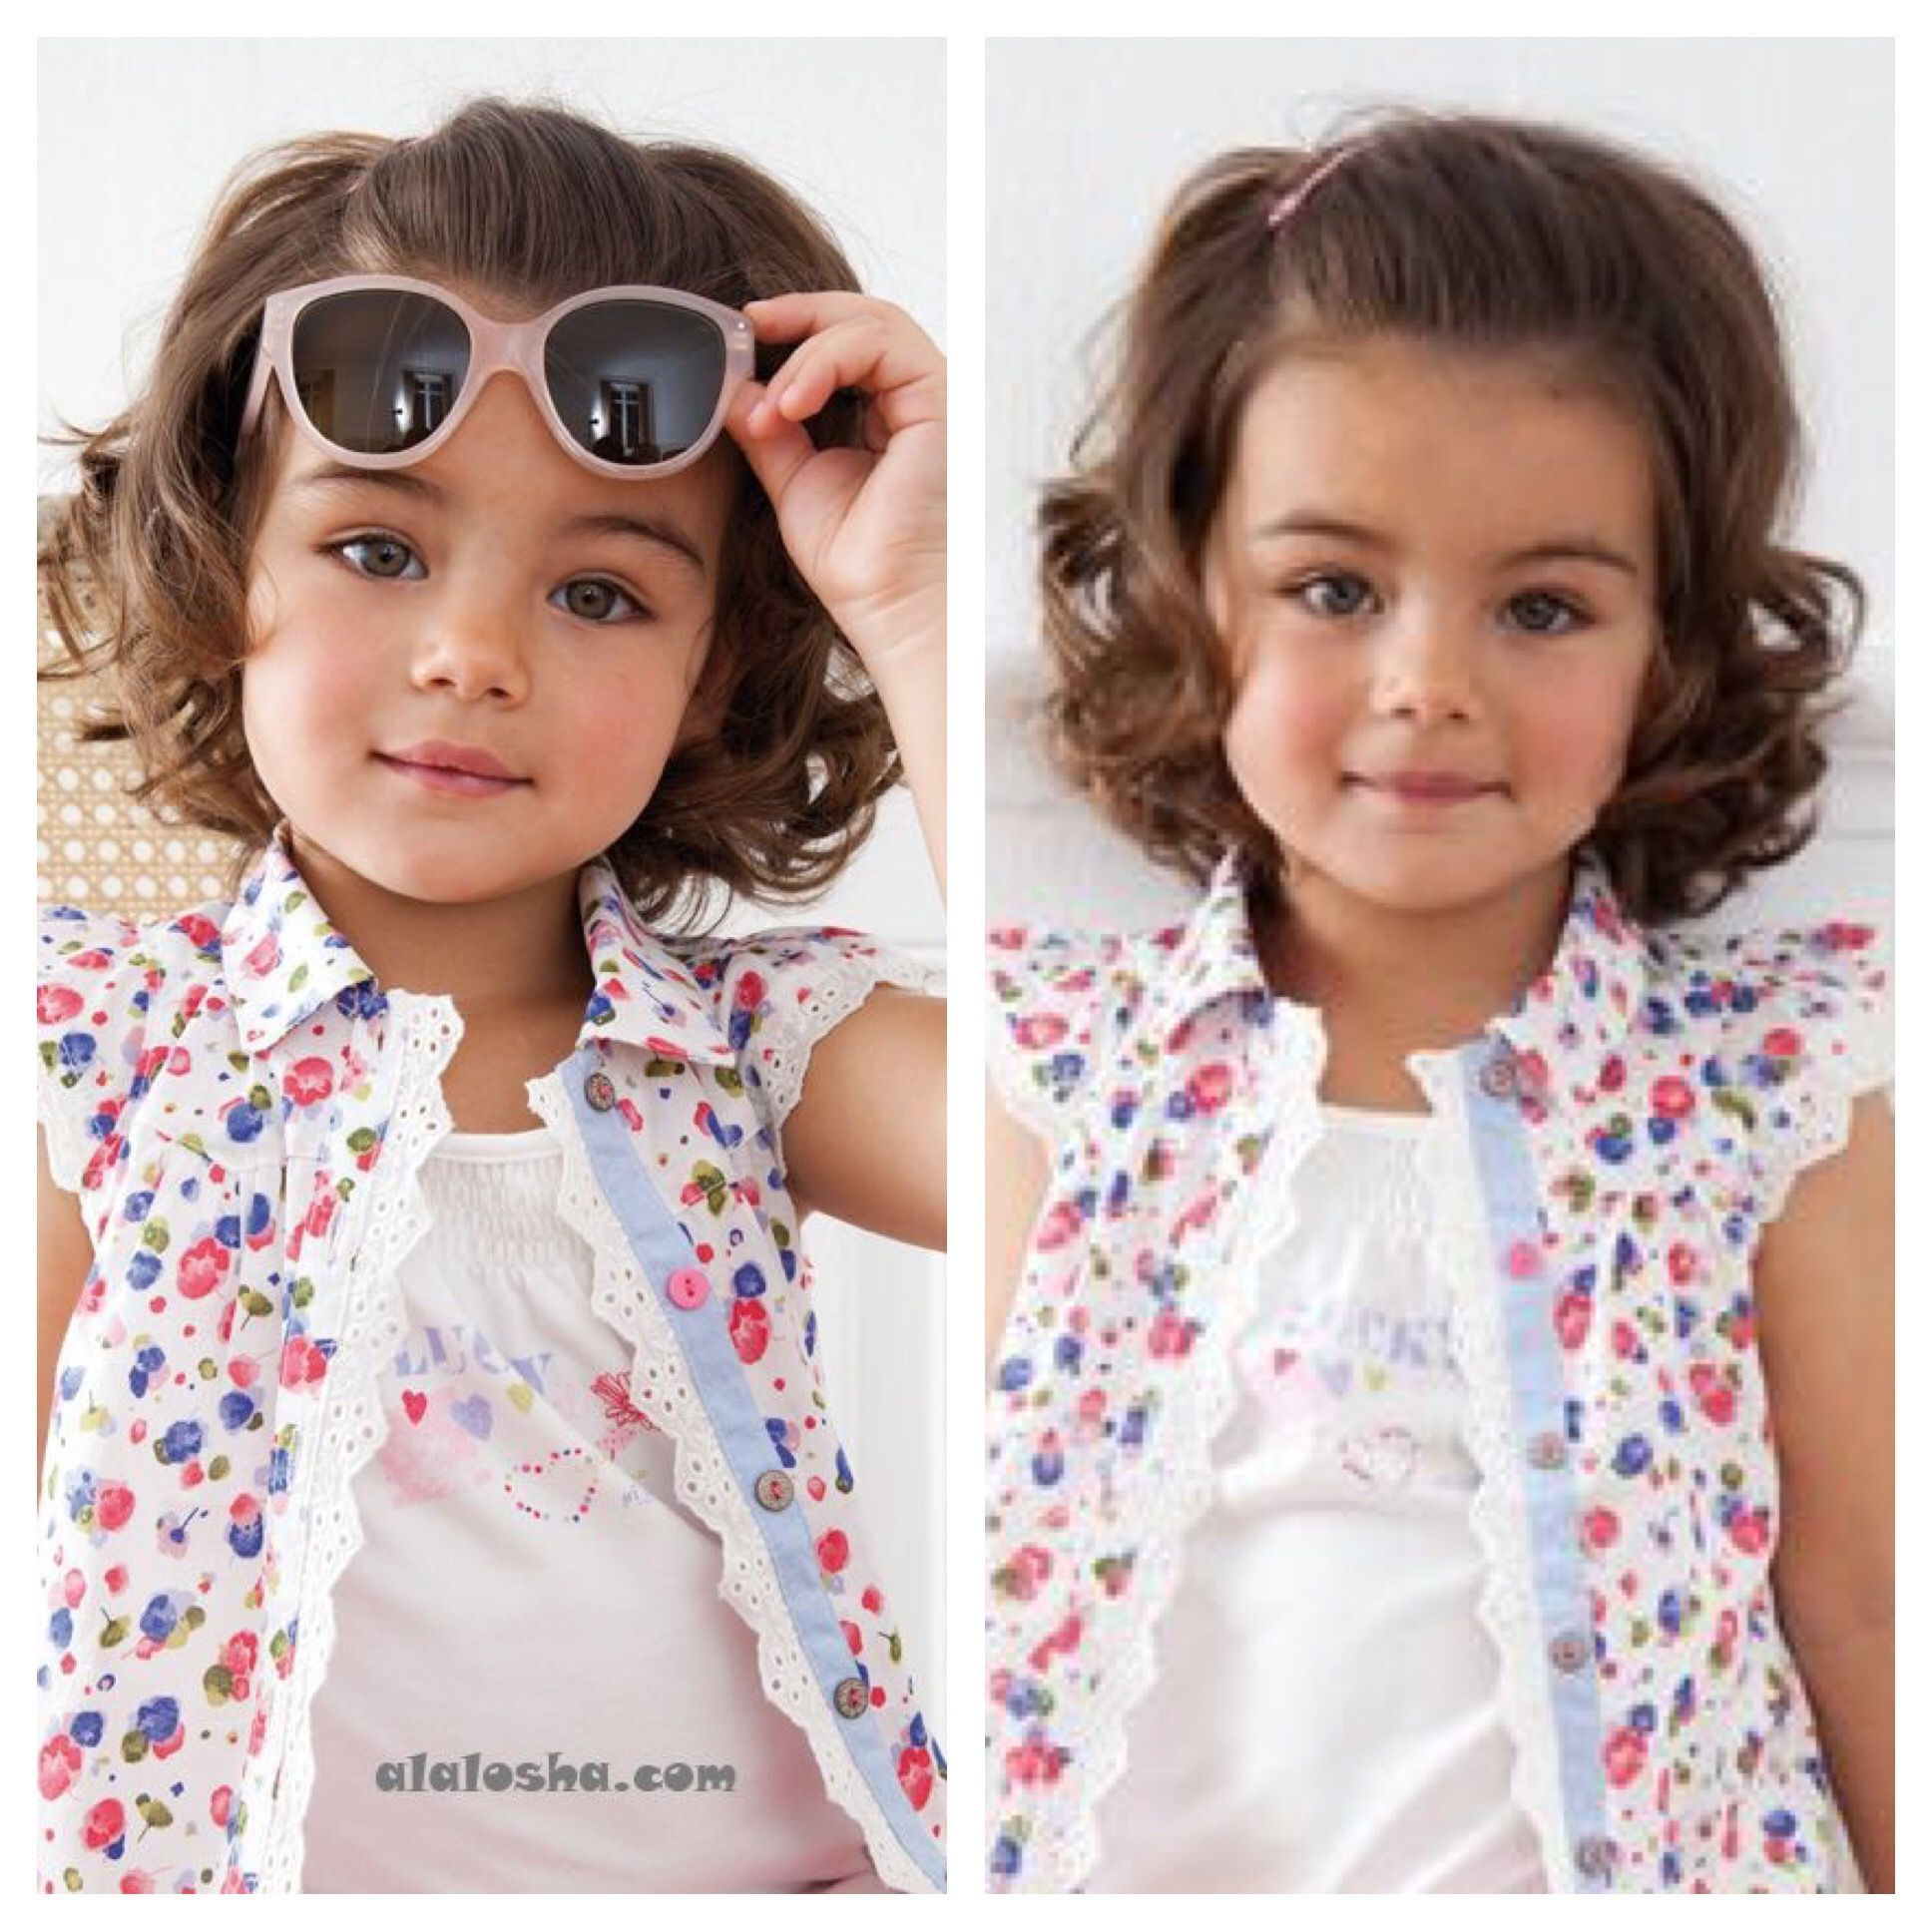 Hair styles for toddlers with curly hair curly girl